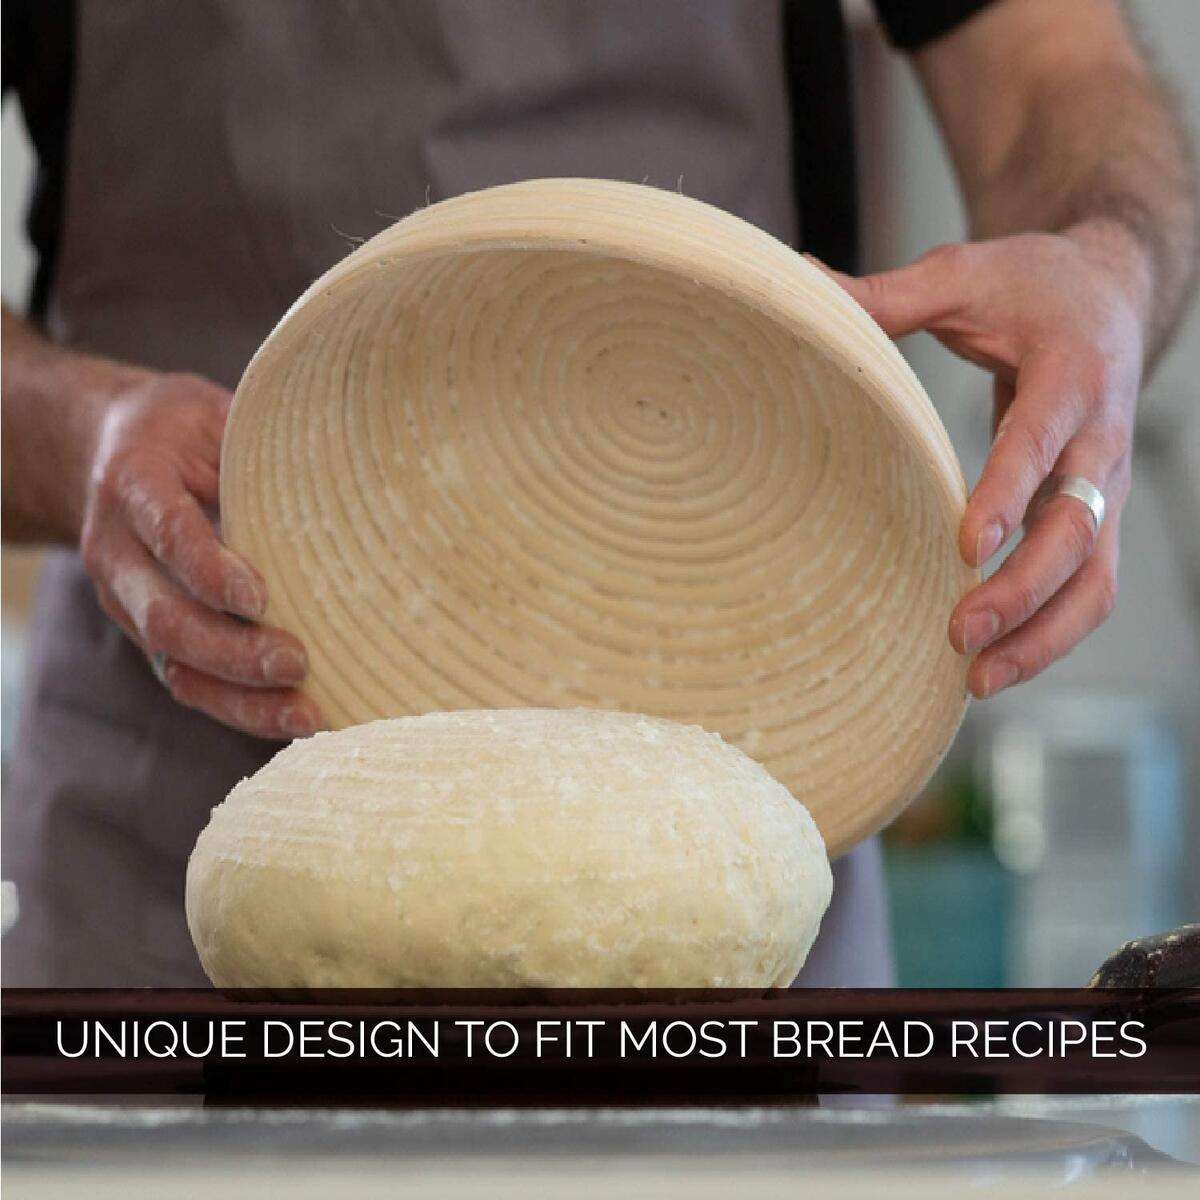 Round 9 Inch Bread Banneton Proofing Basket and Linen Liner. Handmade Dough Rising Rattan bowl. For Professionals and Home Bakers